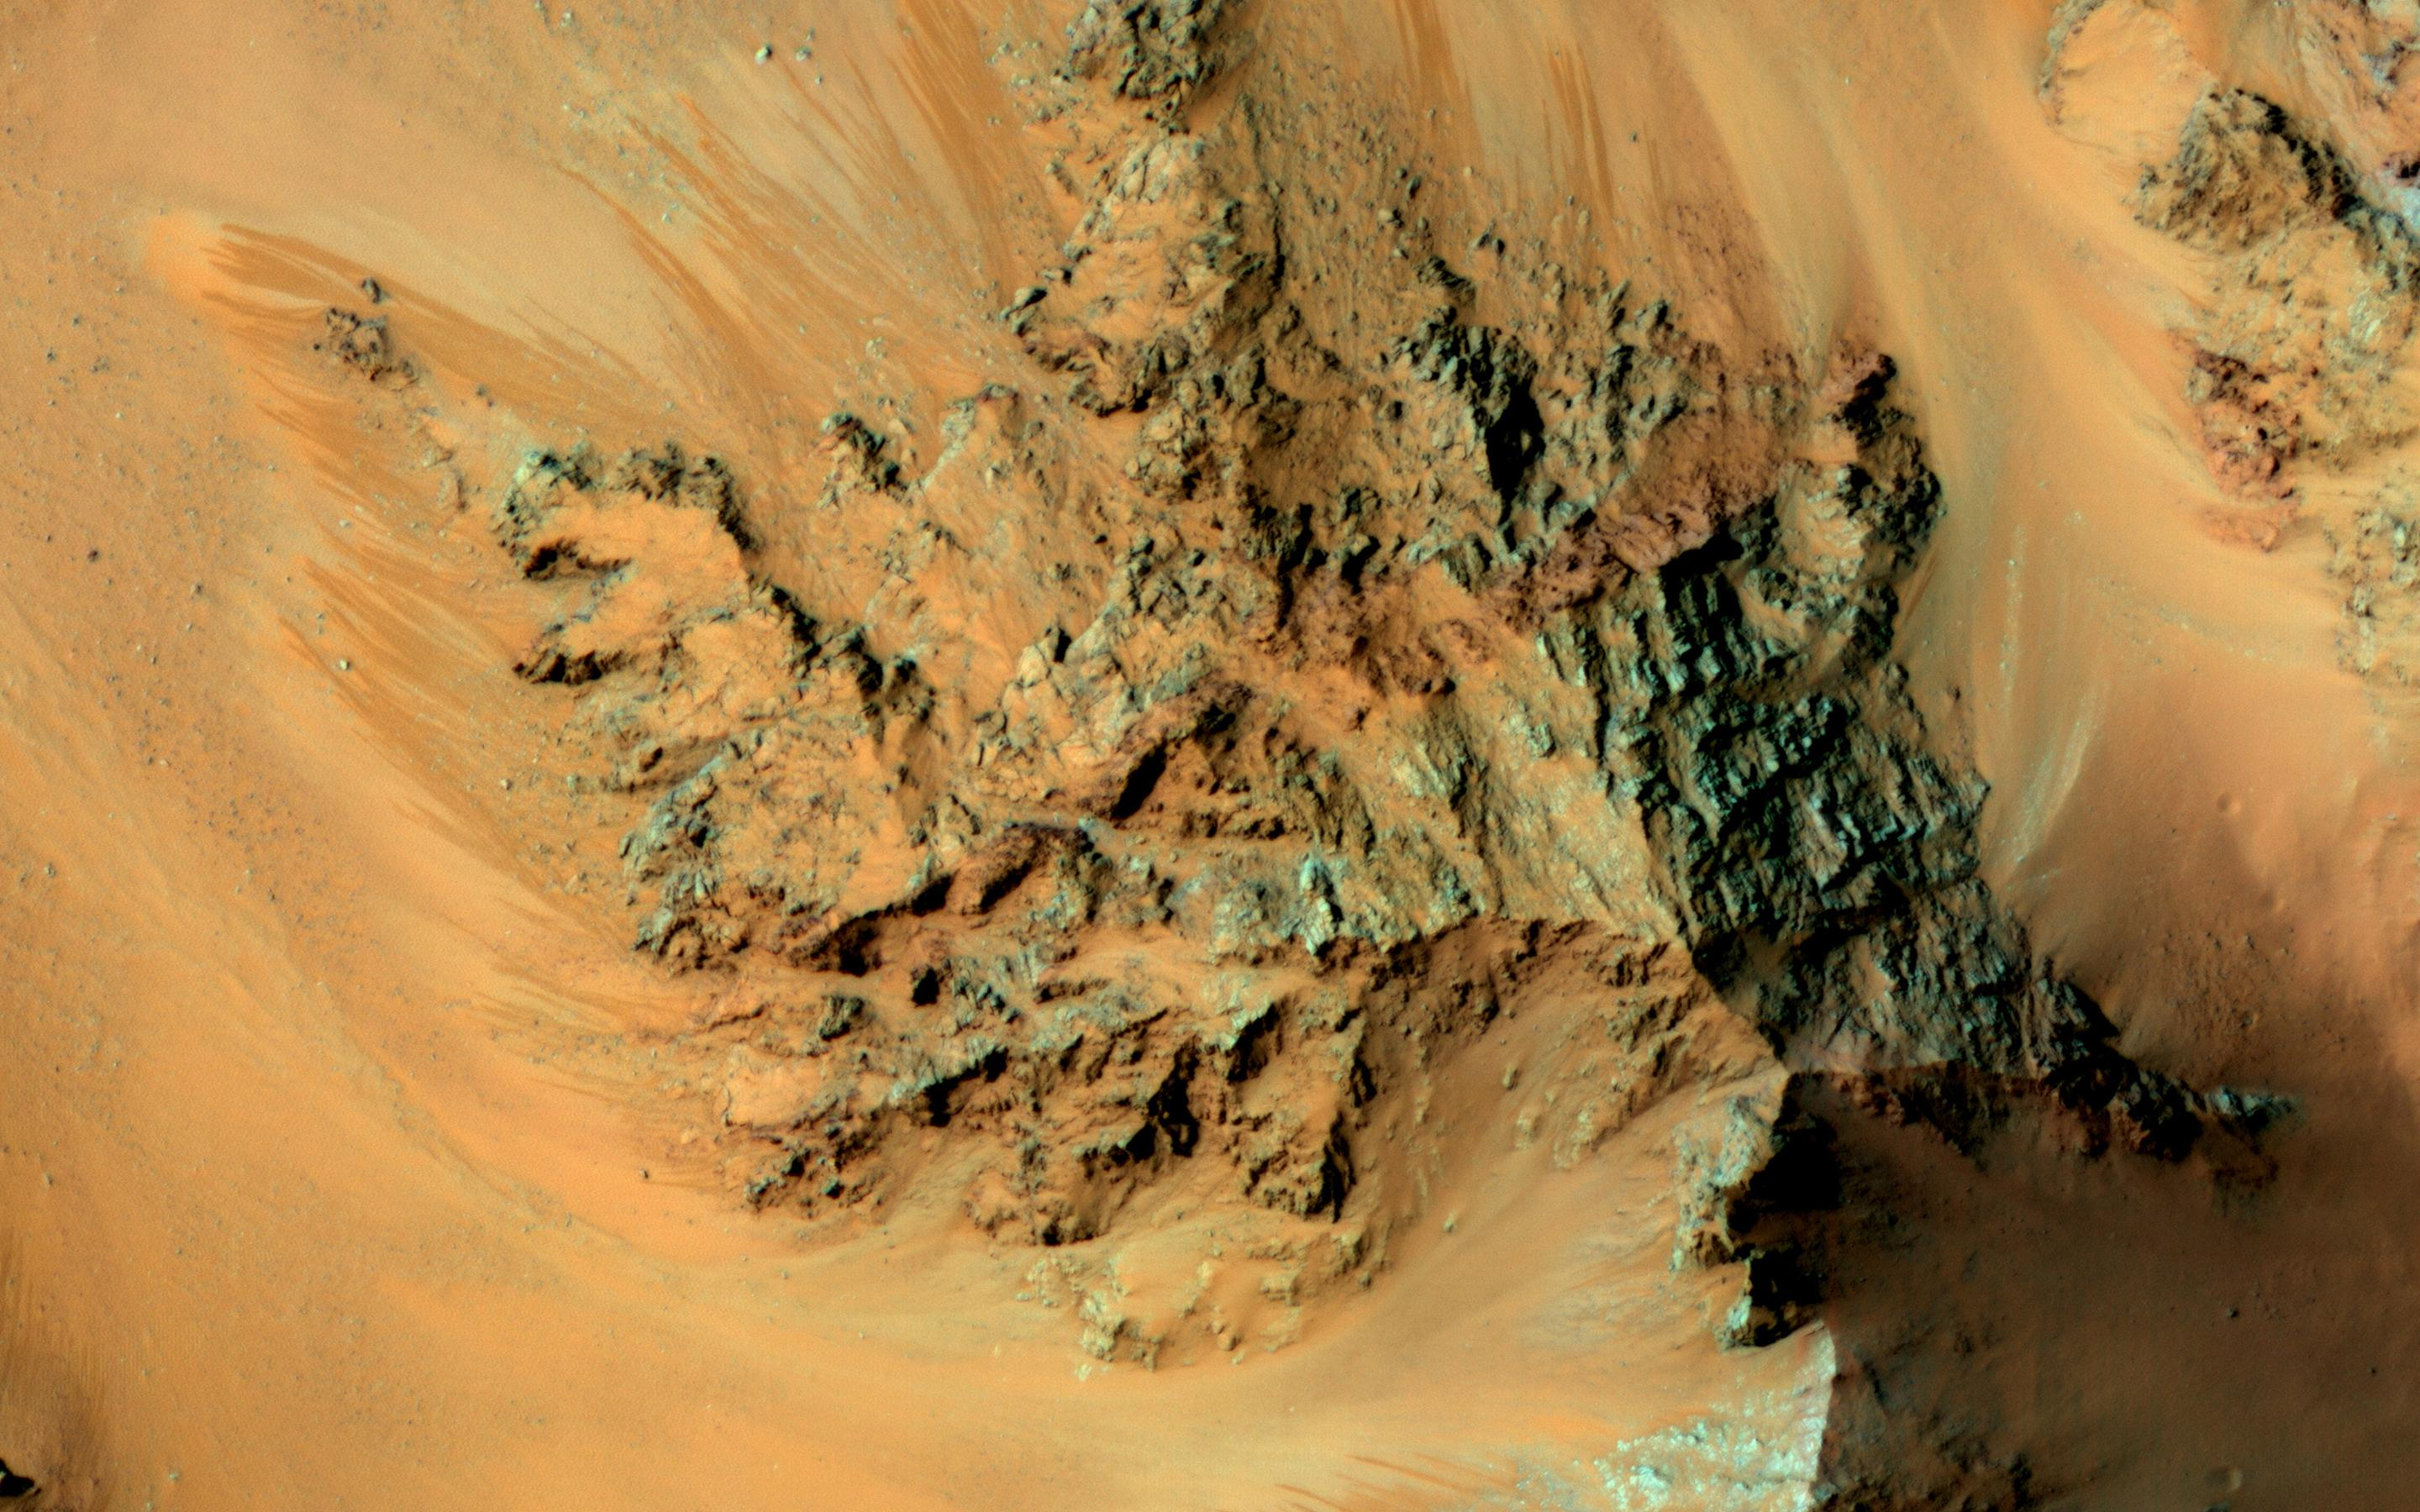 NASA solves part of the mystery about water on Mars